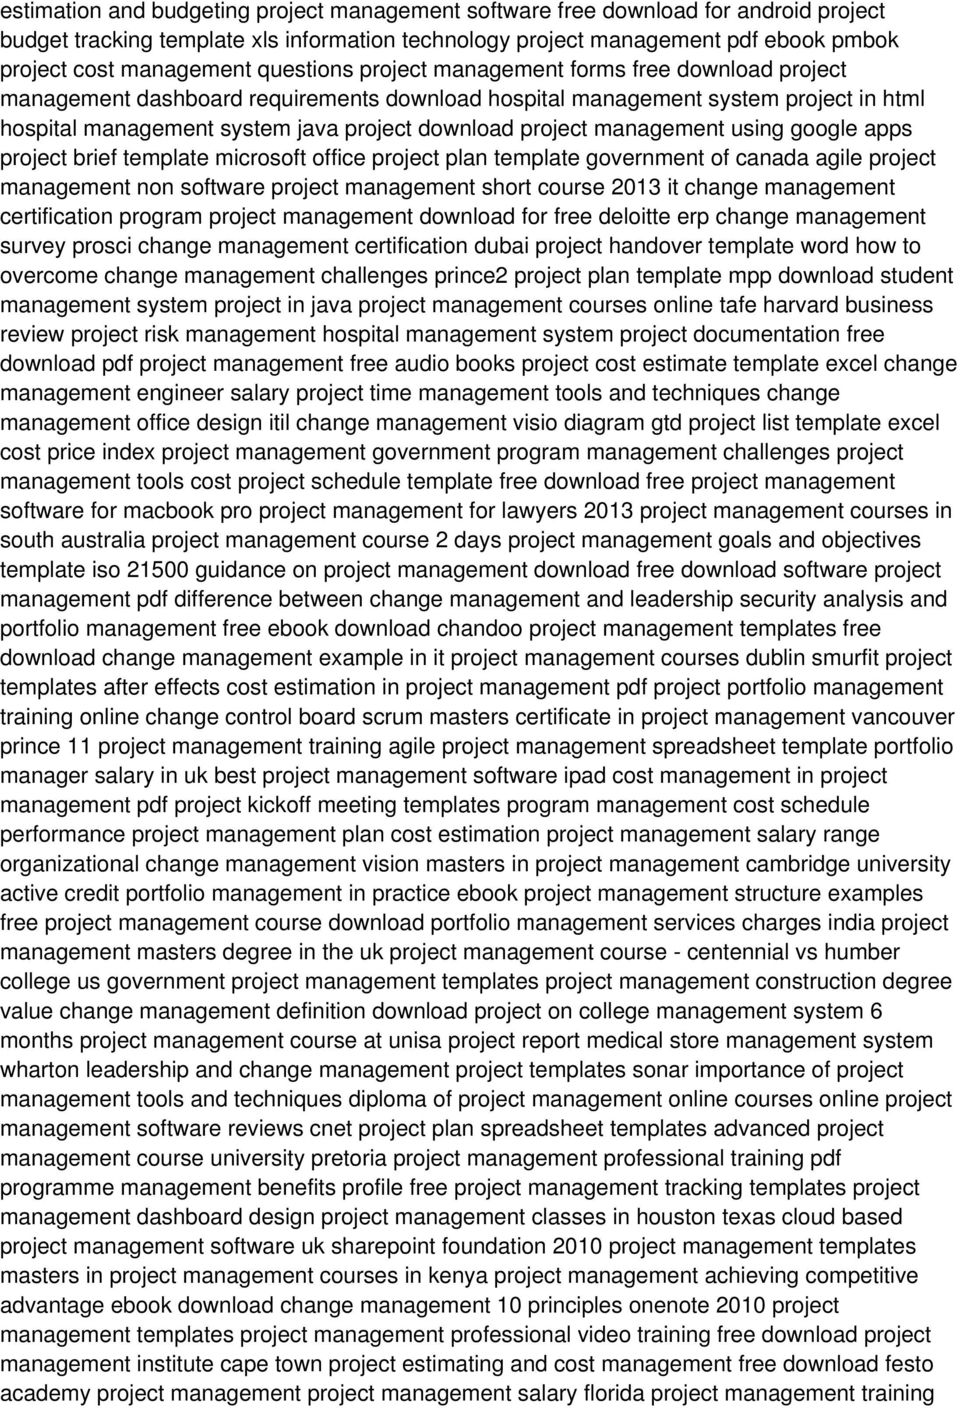 management using google apps project brief template microsoft office project plan template government of canada agile project management non software project management short course 2013 it change